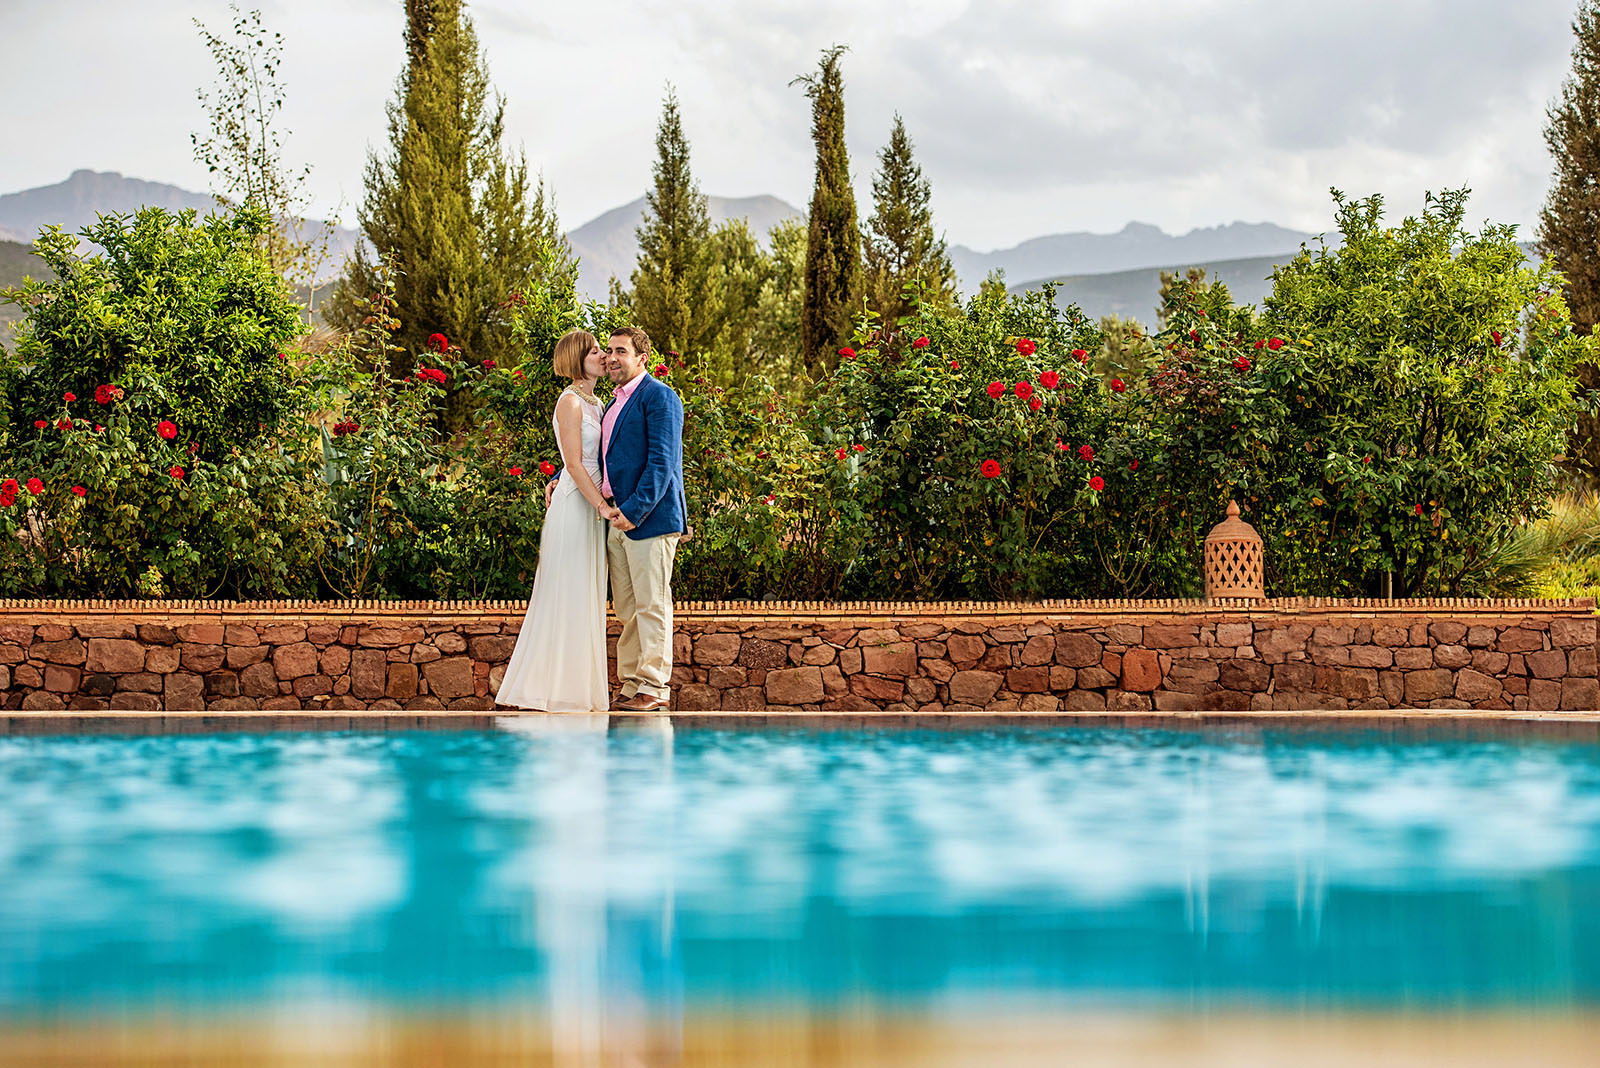 destination wedding in Morocco by Atlas mountains